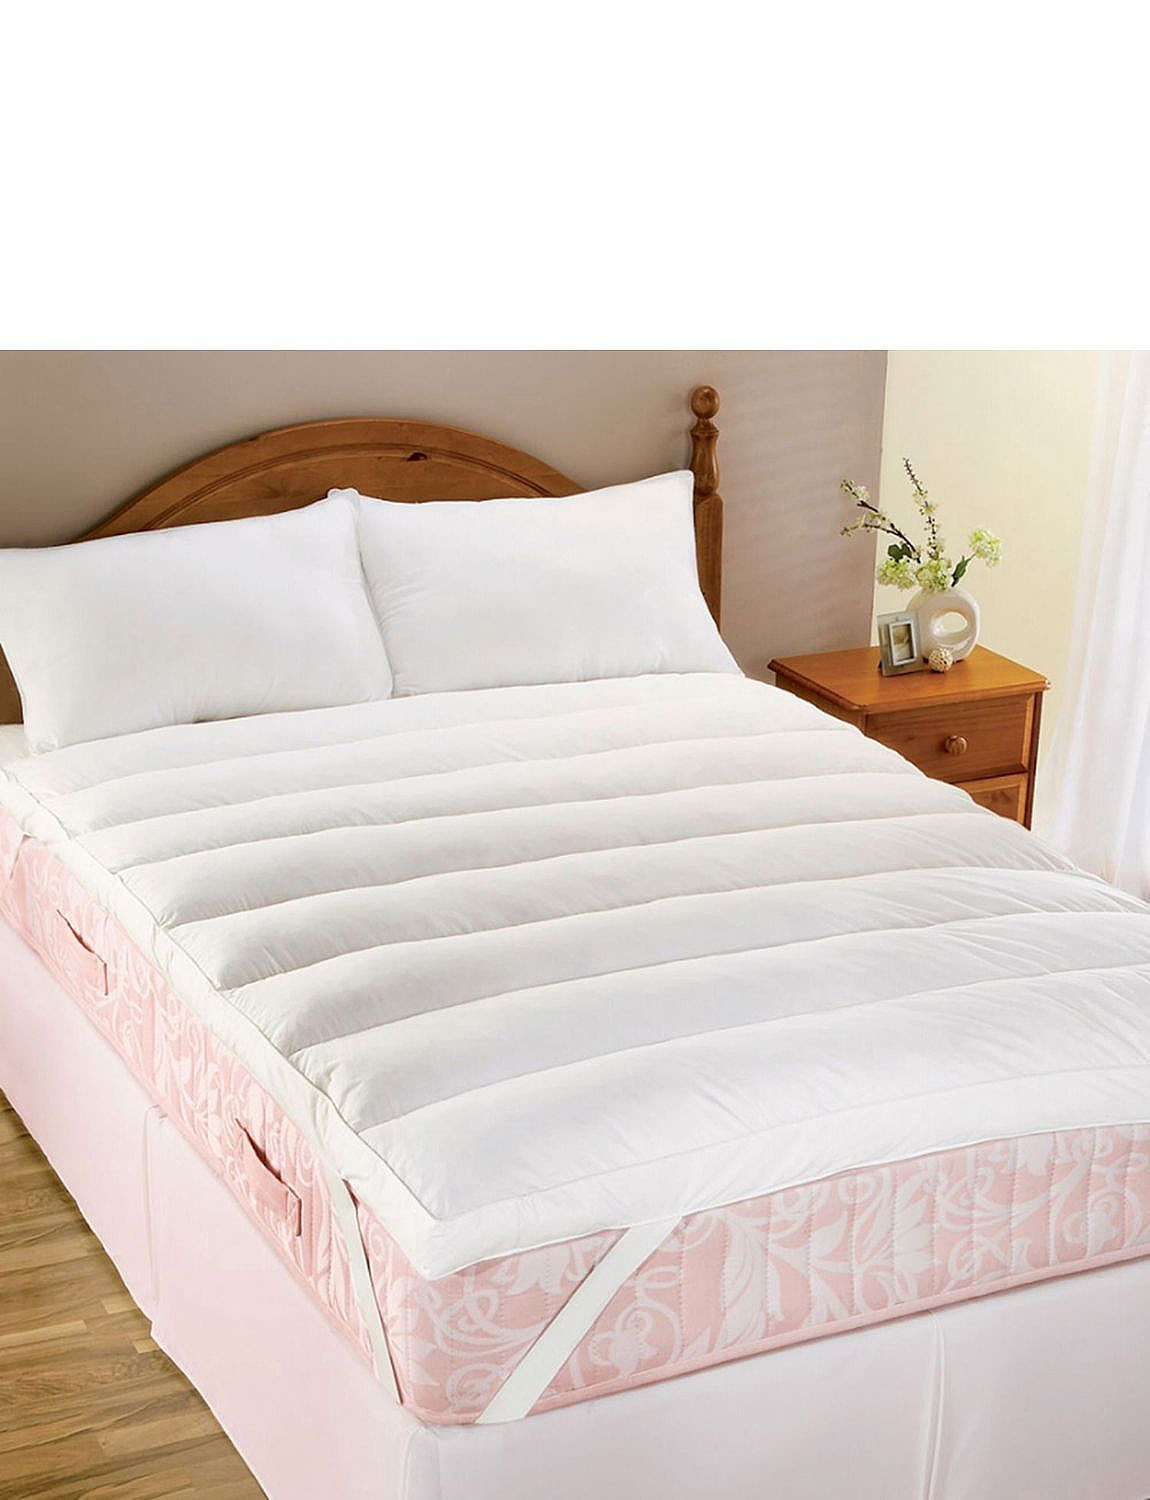 Downland Lumbar Support Feather Mattress Topper Home Bedroom